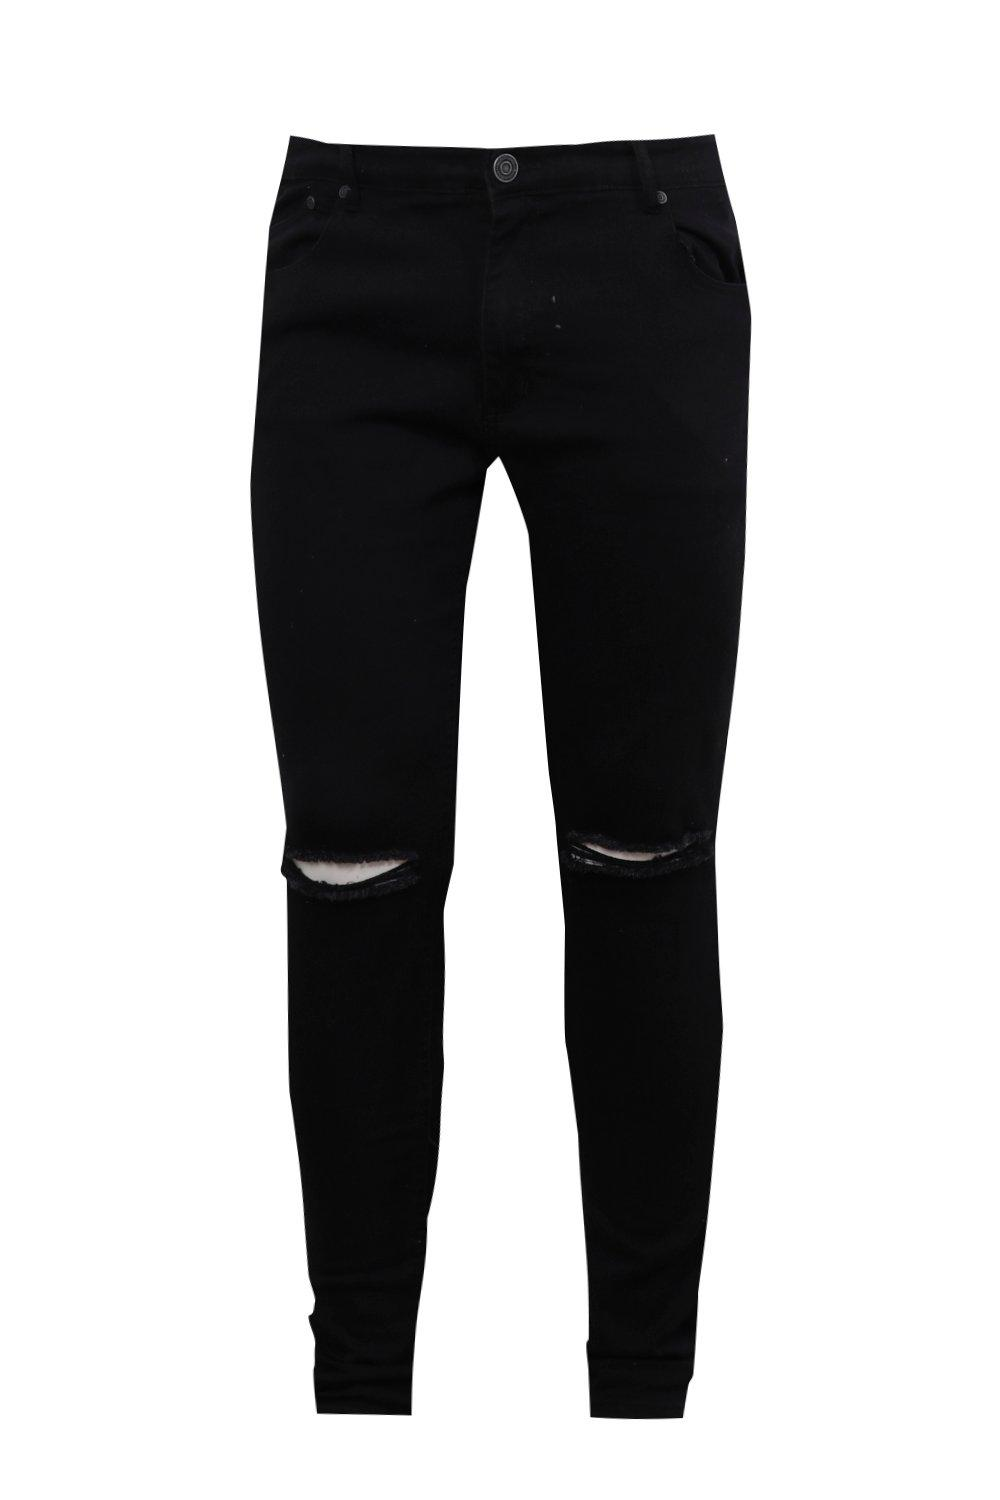 Ripped Tall Skinny Super Big Knee And Jeans black 4pnwI